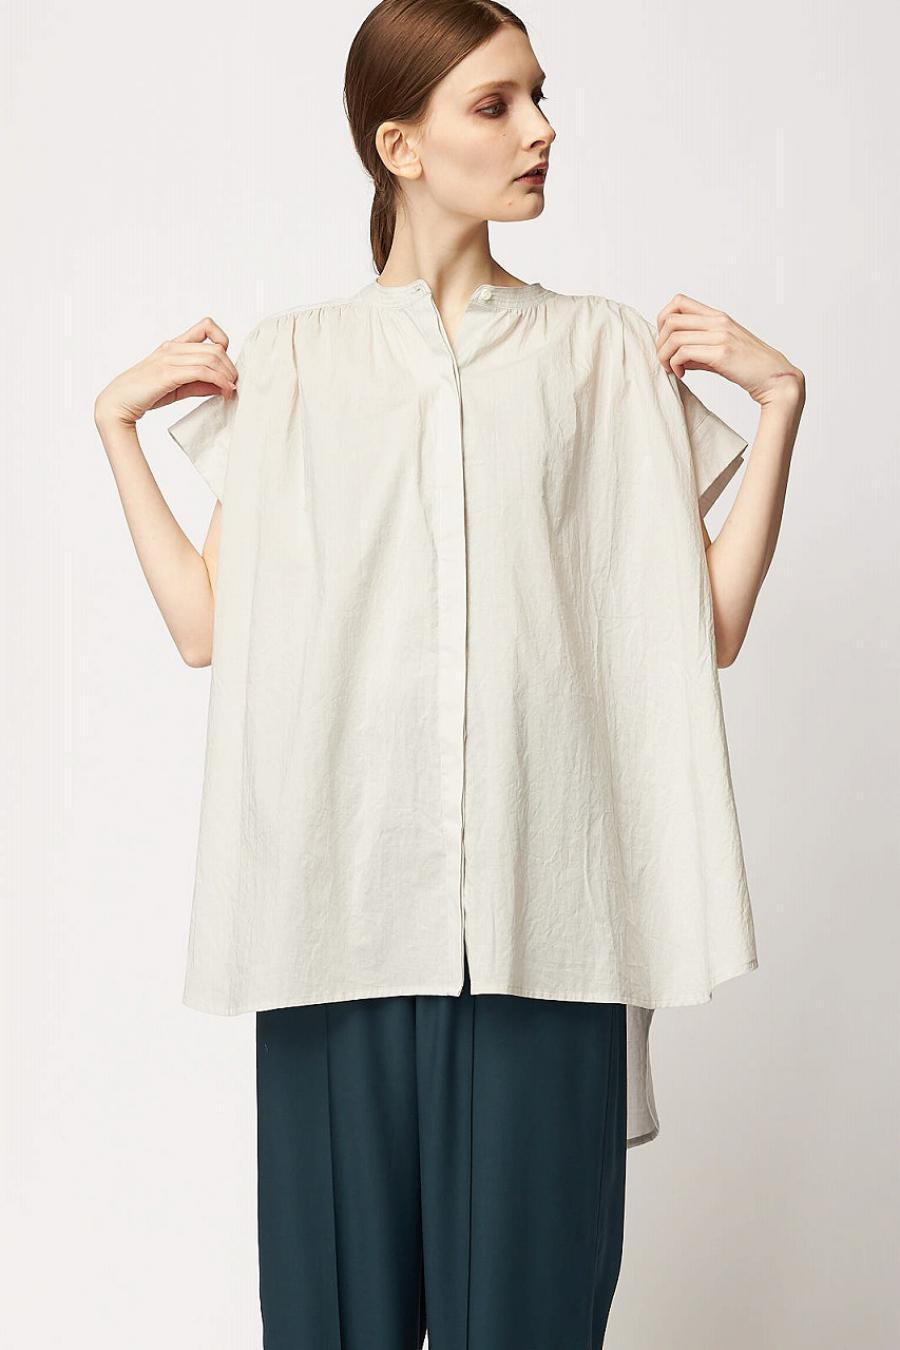 Frenchsleeve Shirt